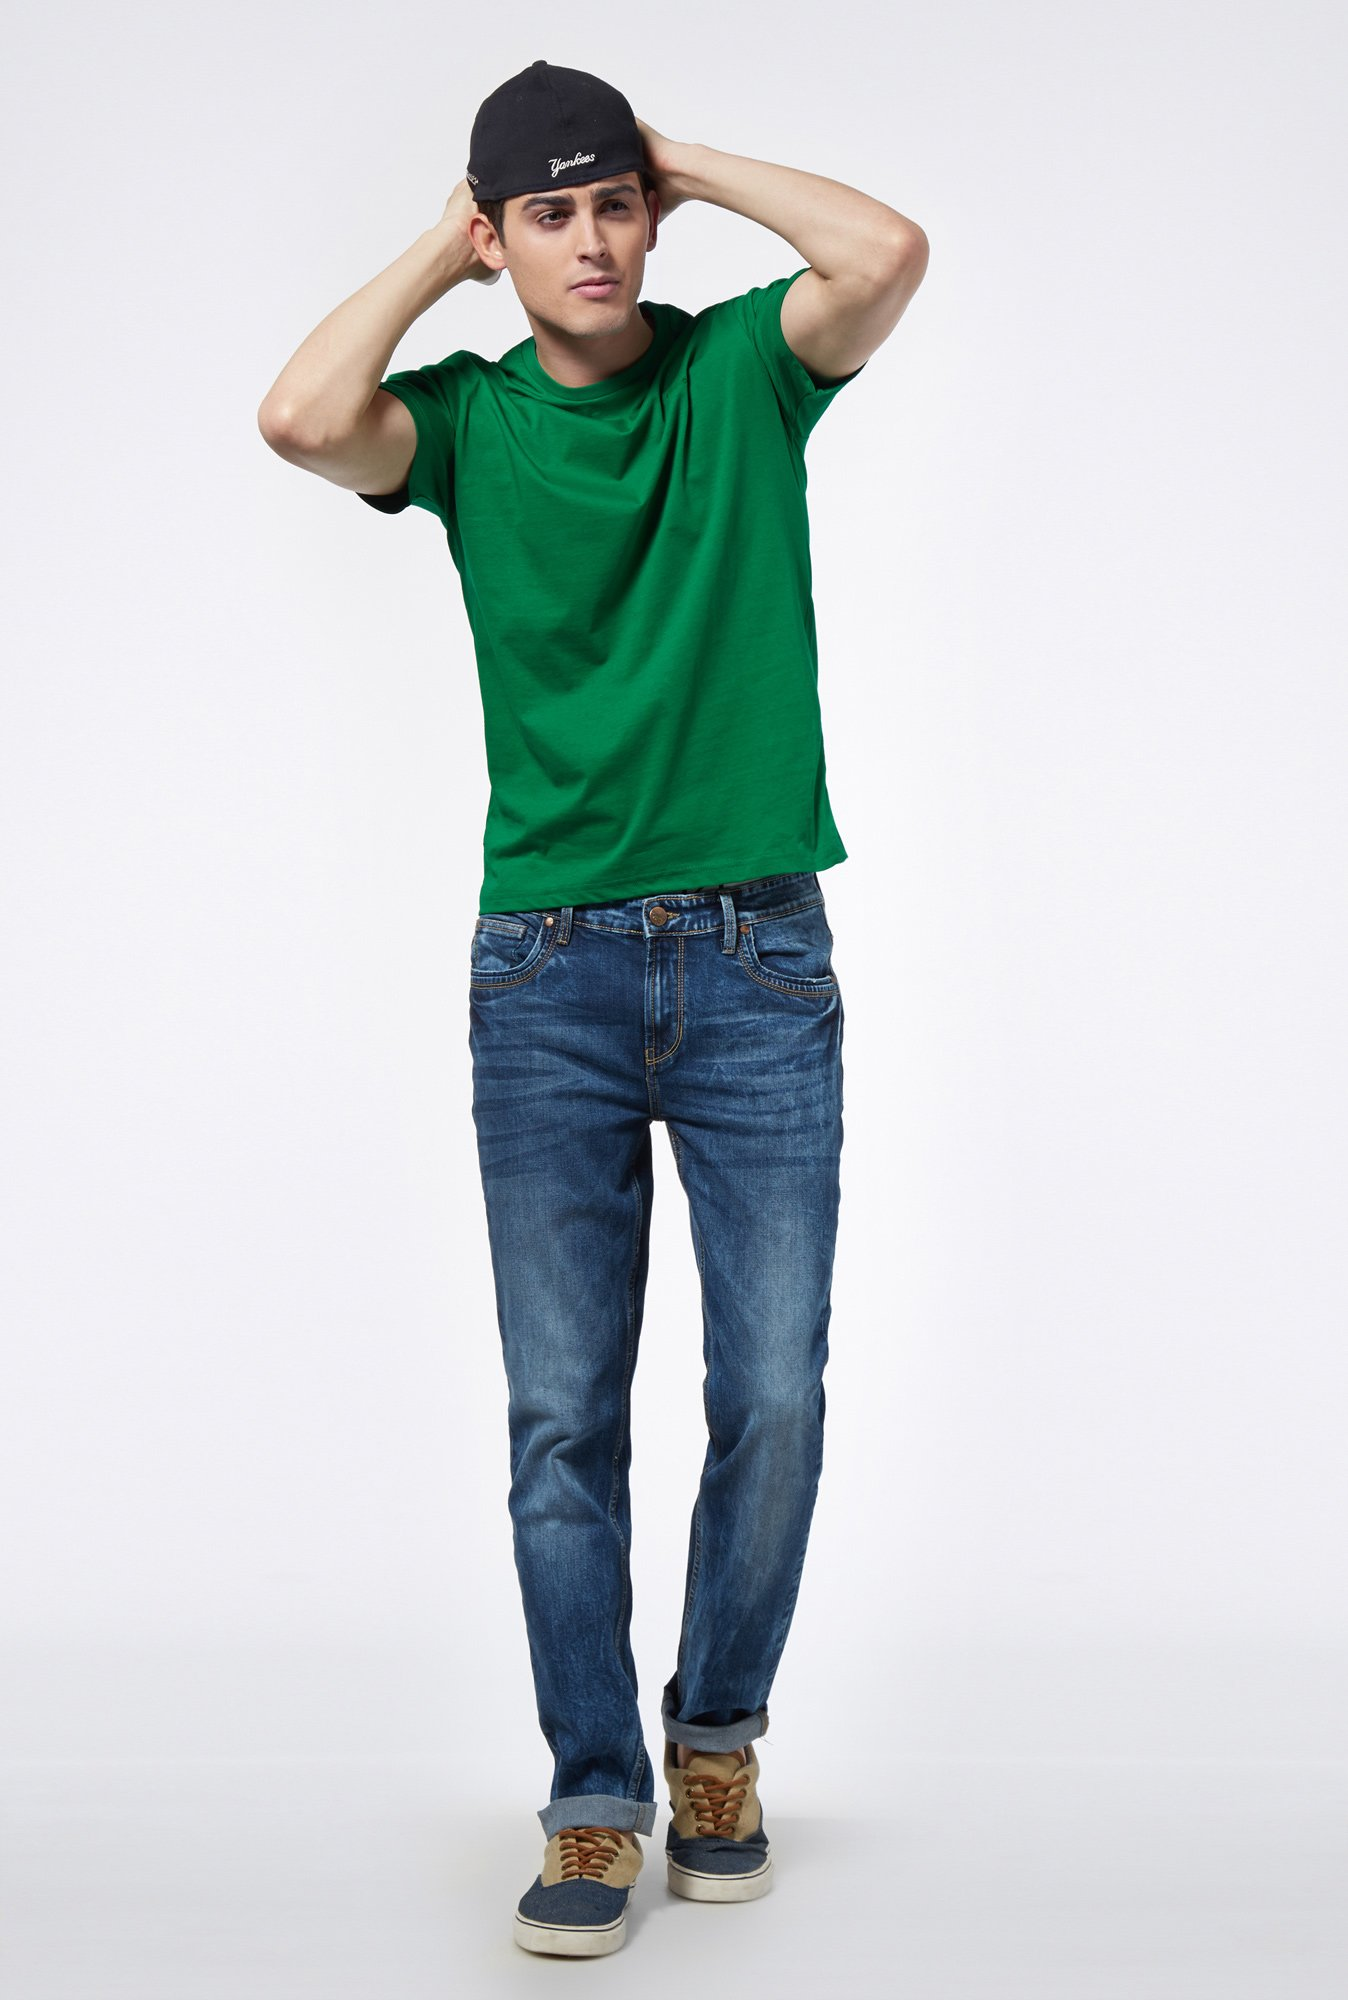 Provogue Green Crew T Shirt